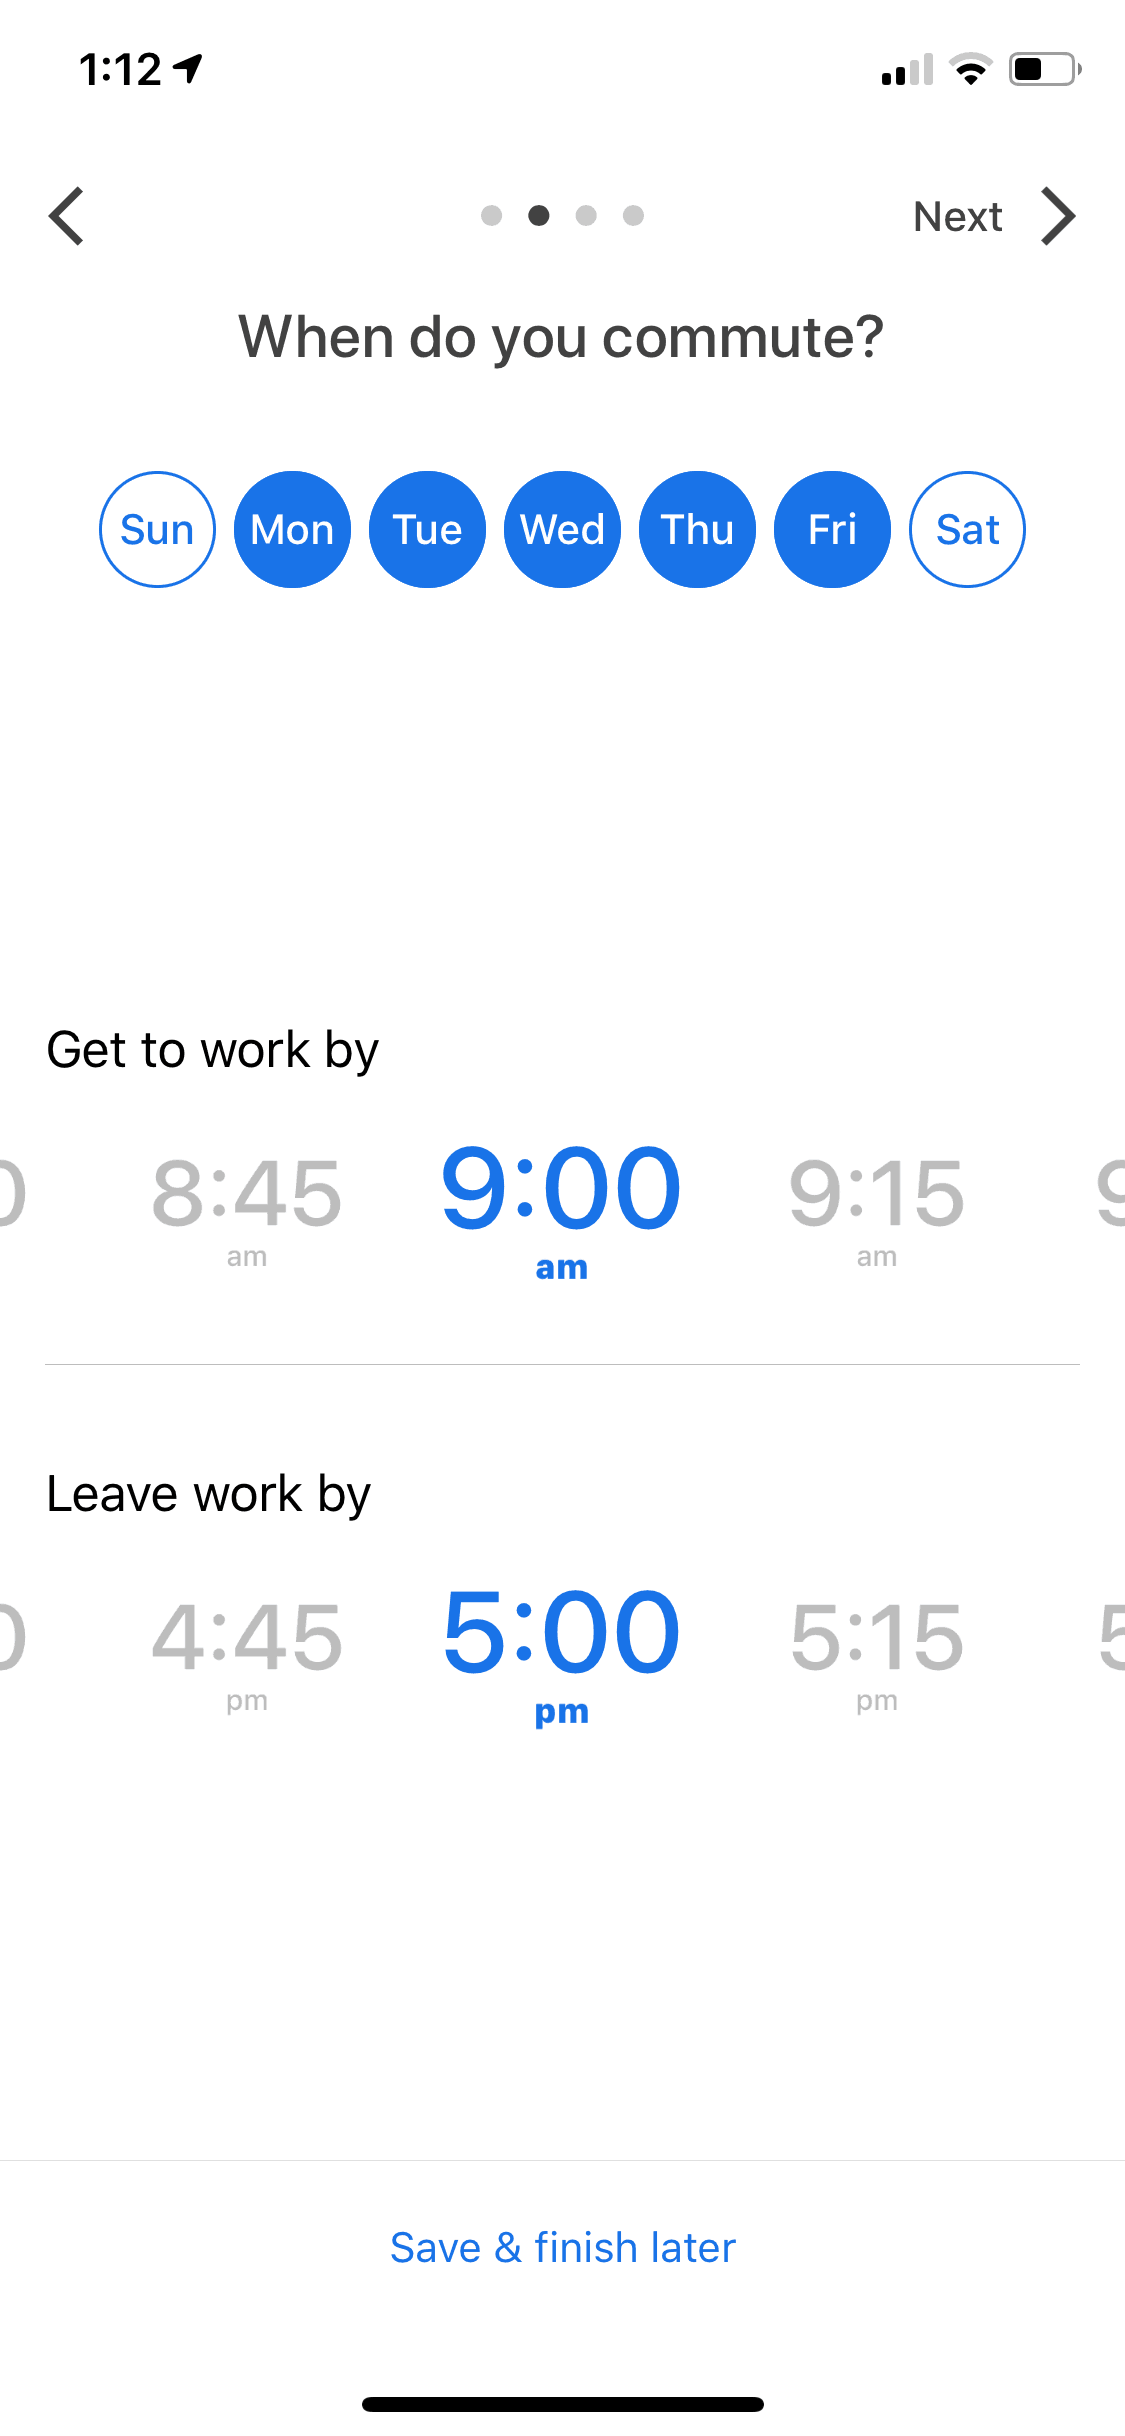 Time Picker by Google Maps on iOS from UIGarage